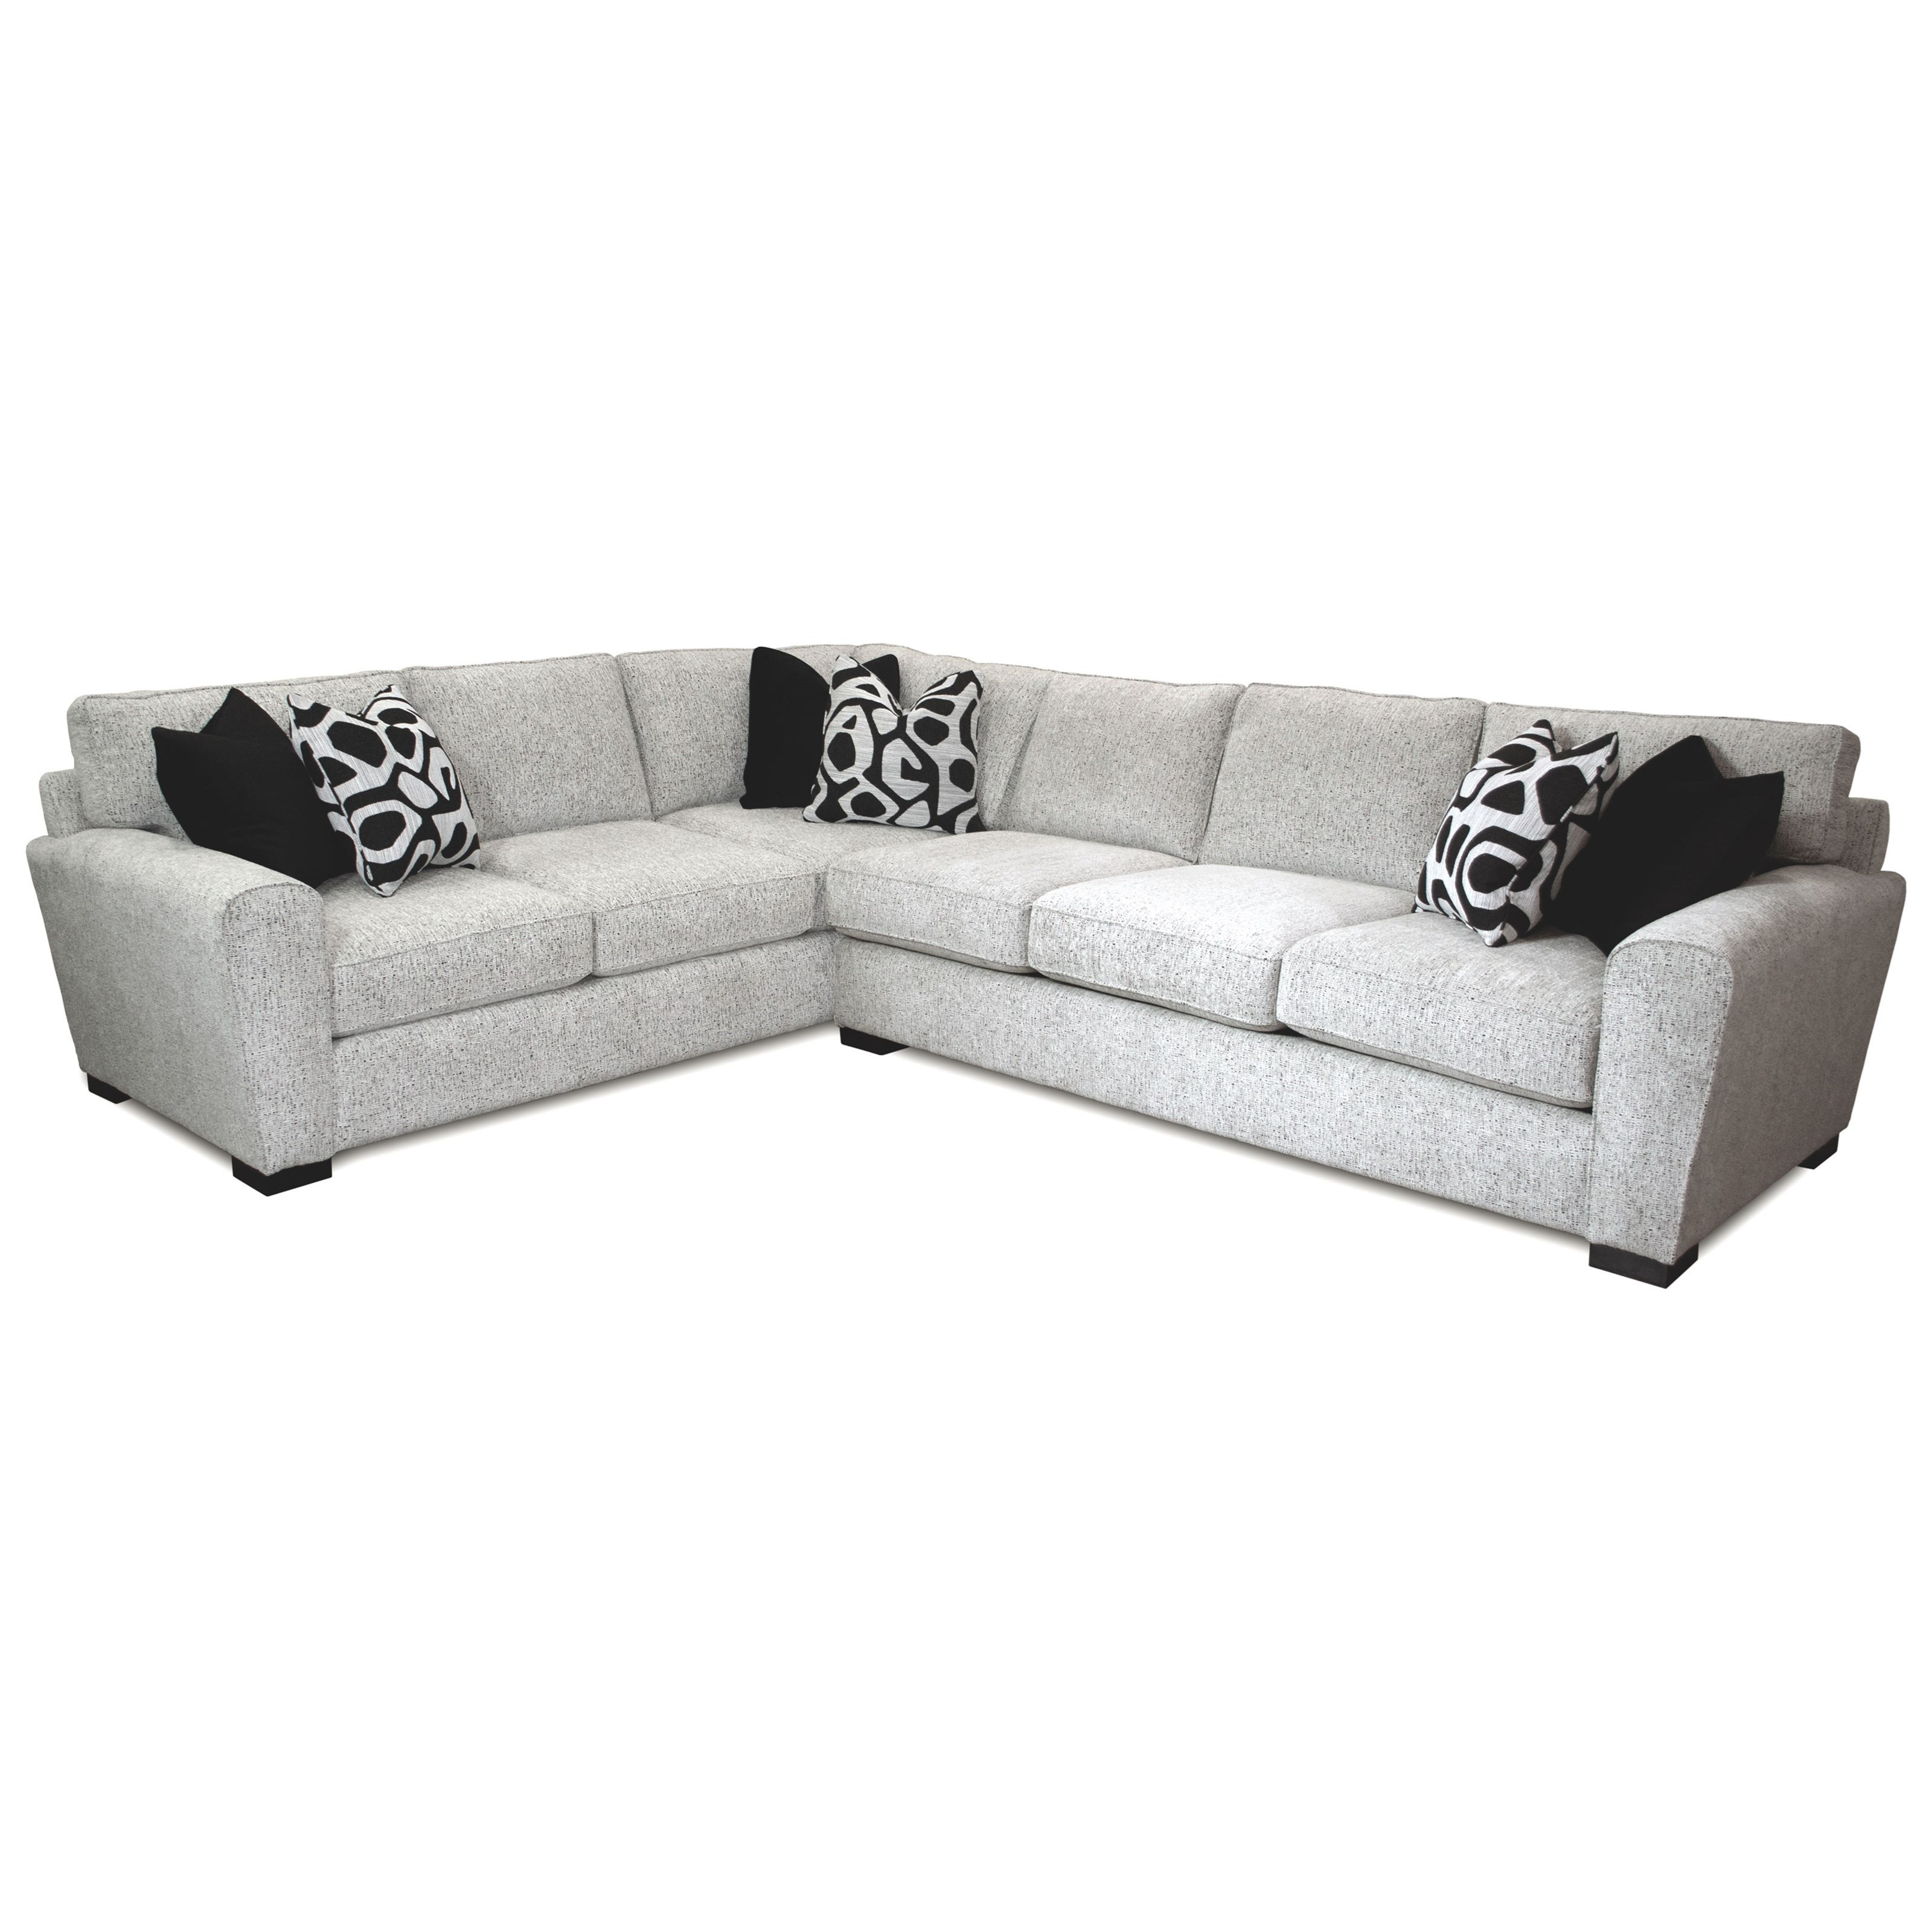 431 Sectional by Stanton at Wilson's Furniture